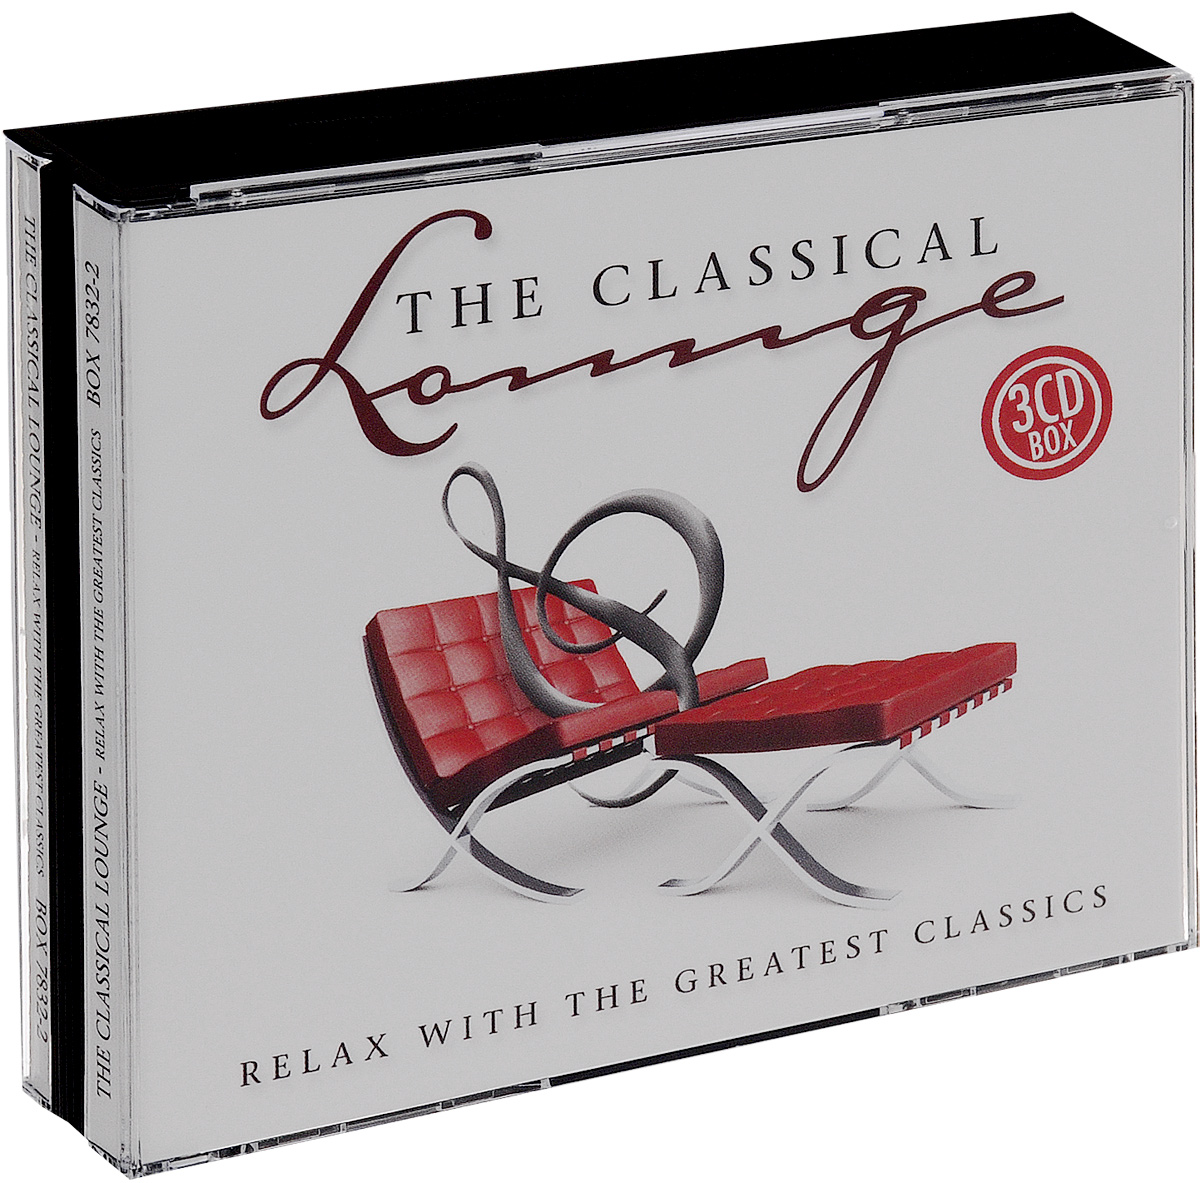 The Classical Lounge. Relax With Greatest Classics (3 CD) комплект постельного белья quelle tete a tete 1011109 1 5сп 70х70 2